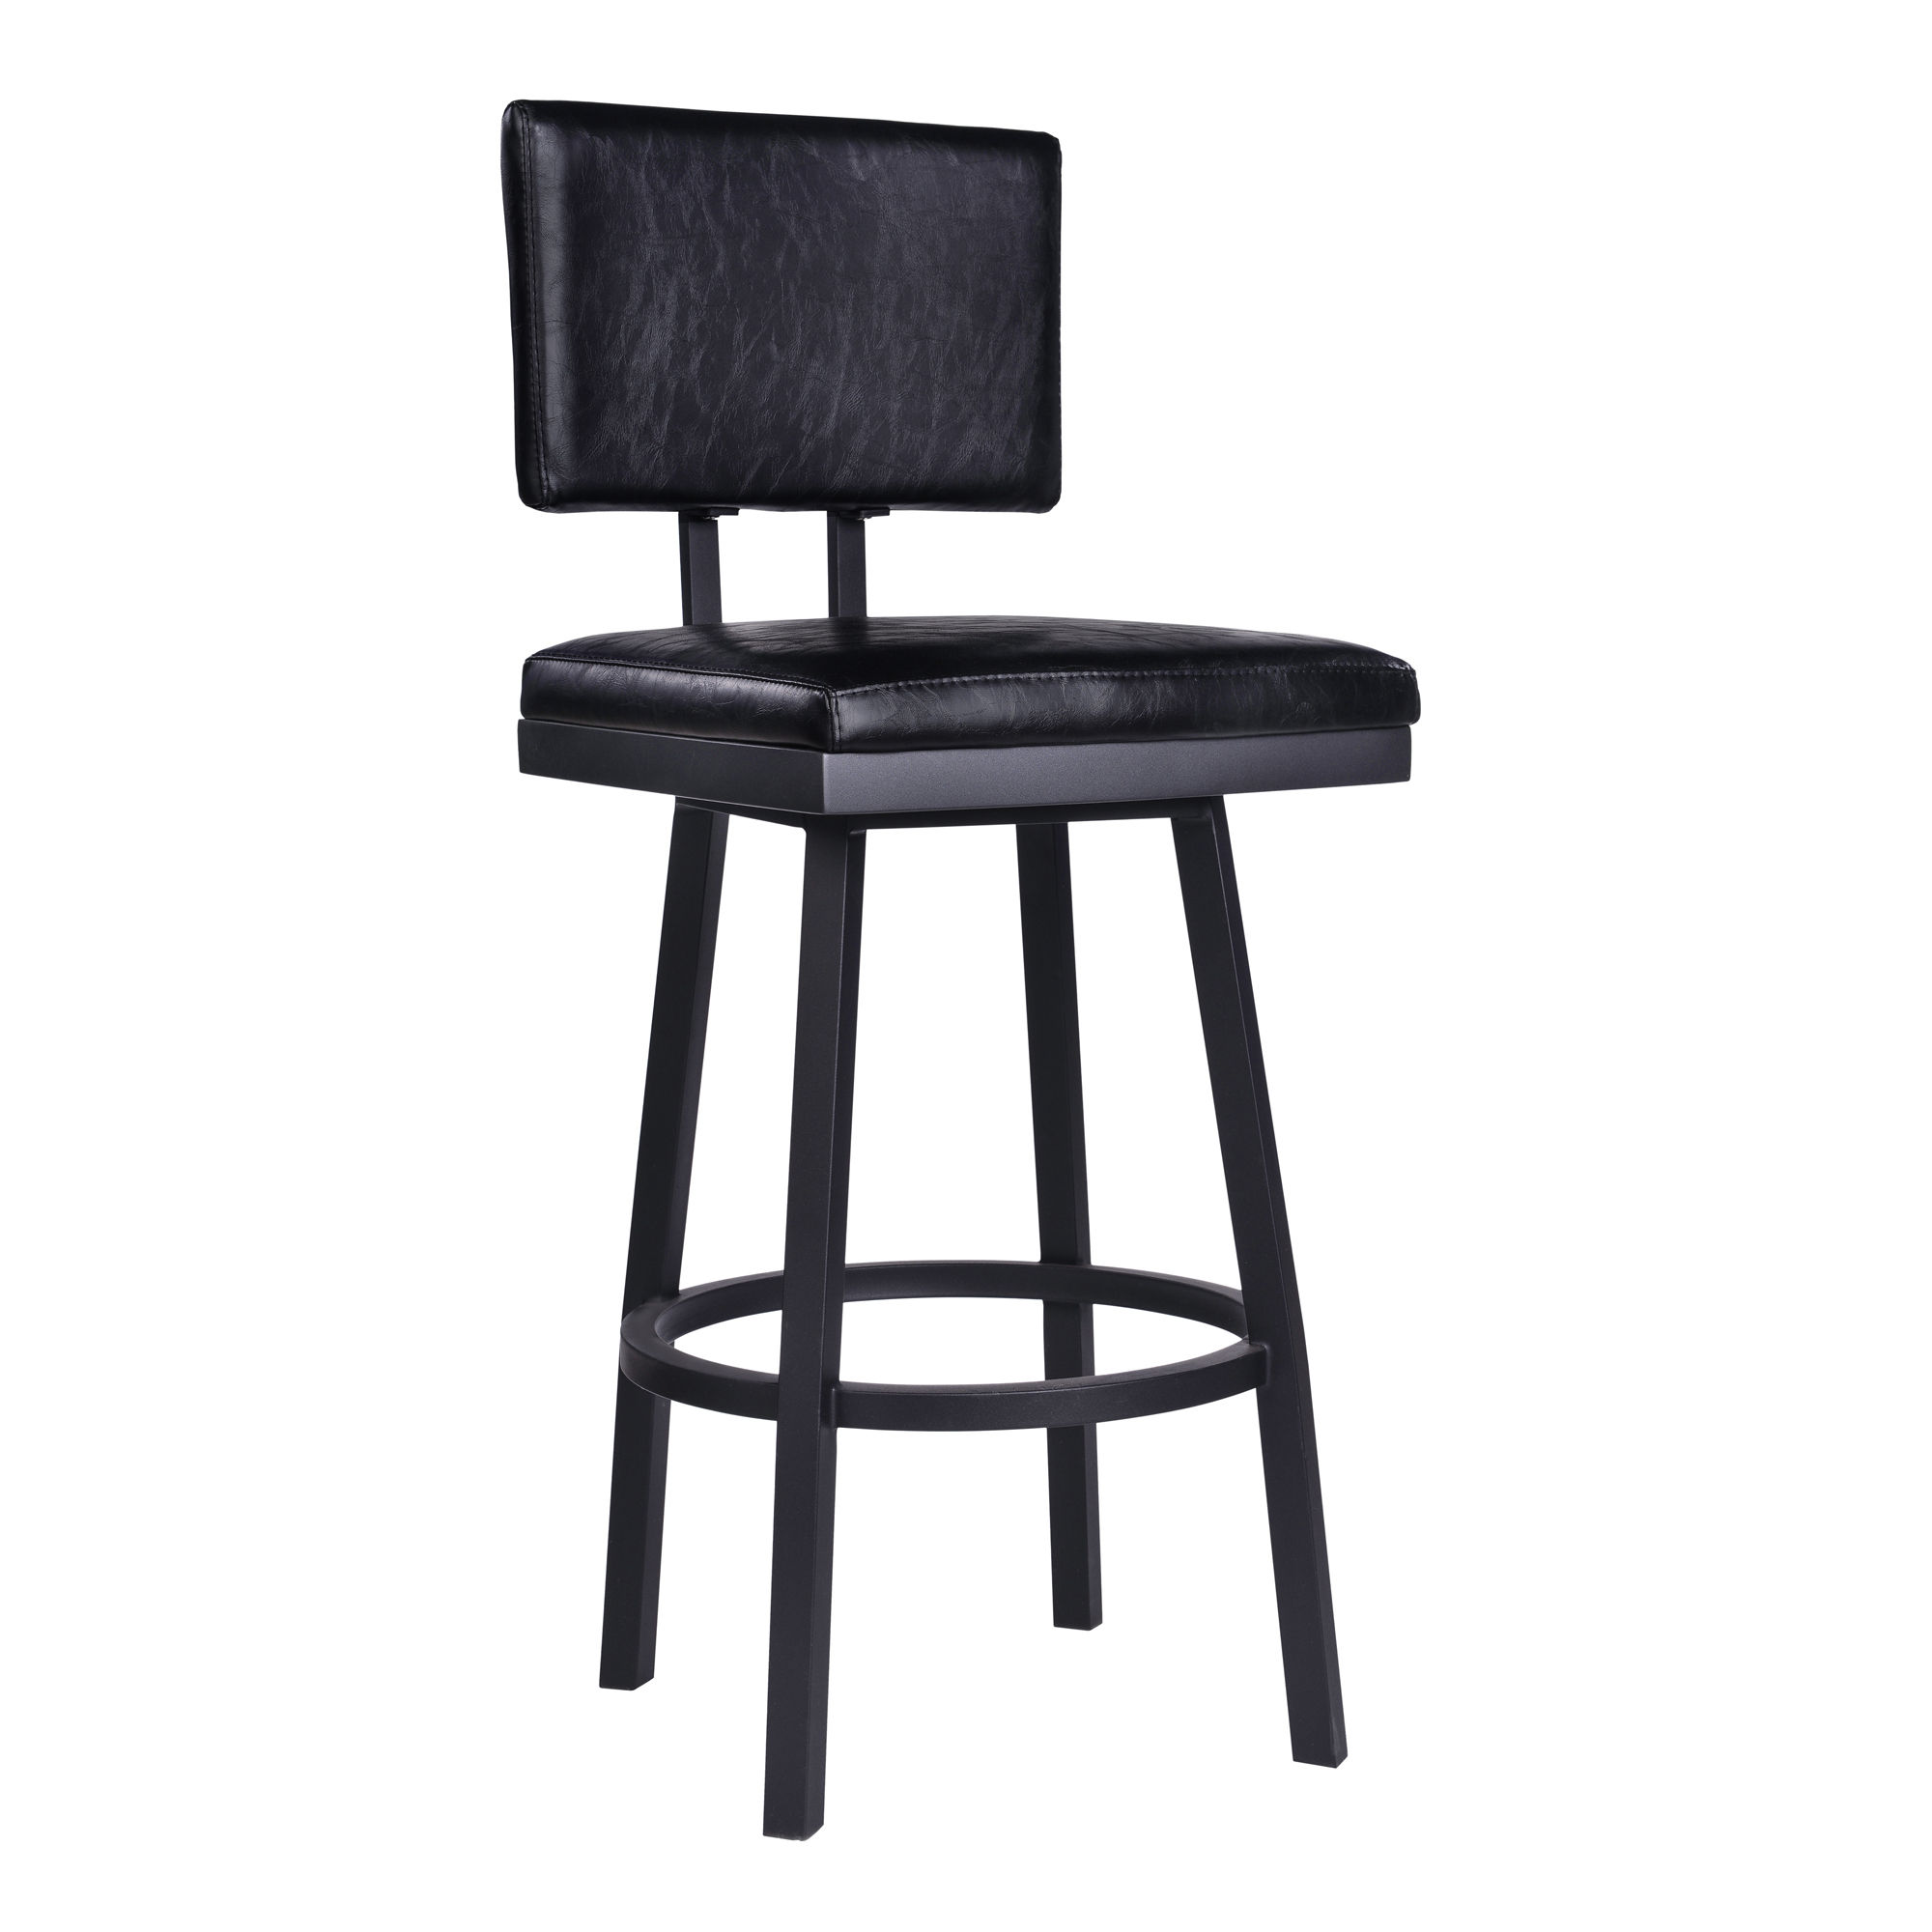 Astounding Armen Living Balboa Vintage Black Faux Leather 30 Inch Bar Height Barstool Pabps2019 Chair Design Images Pabps2019Com